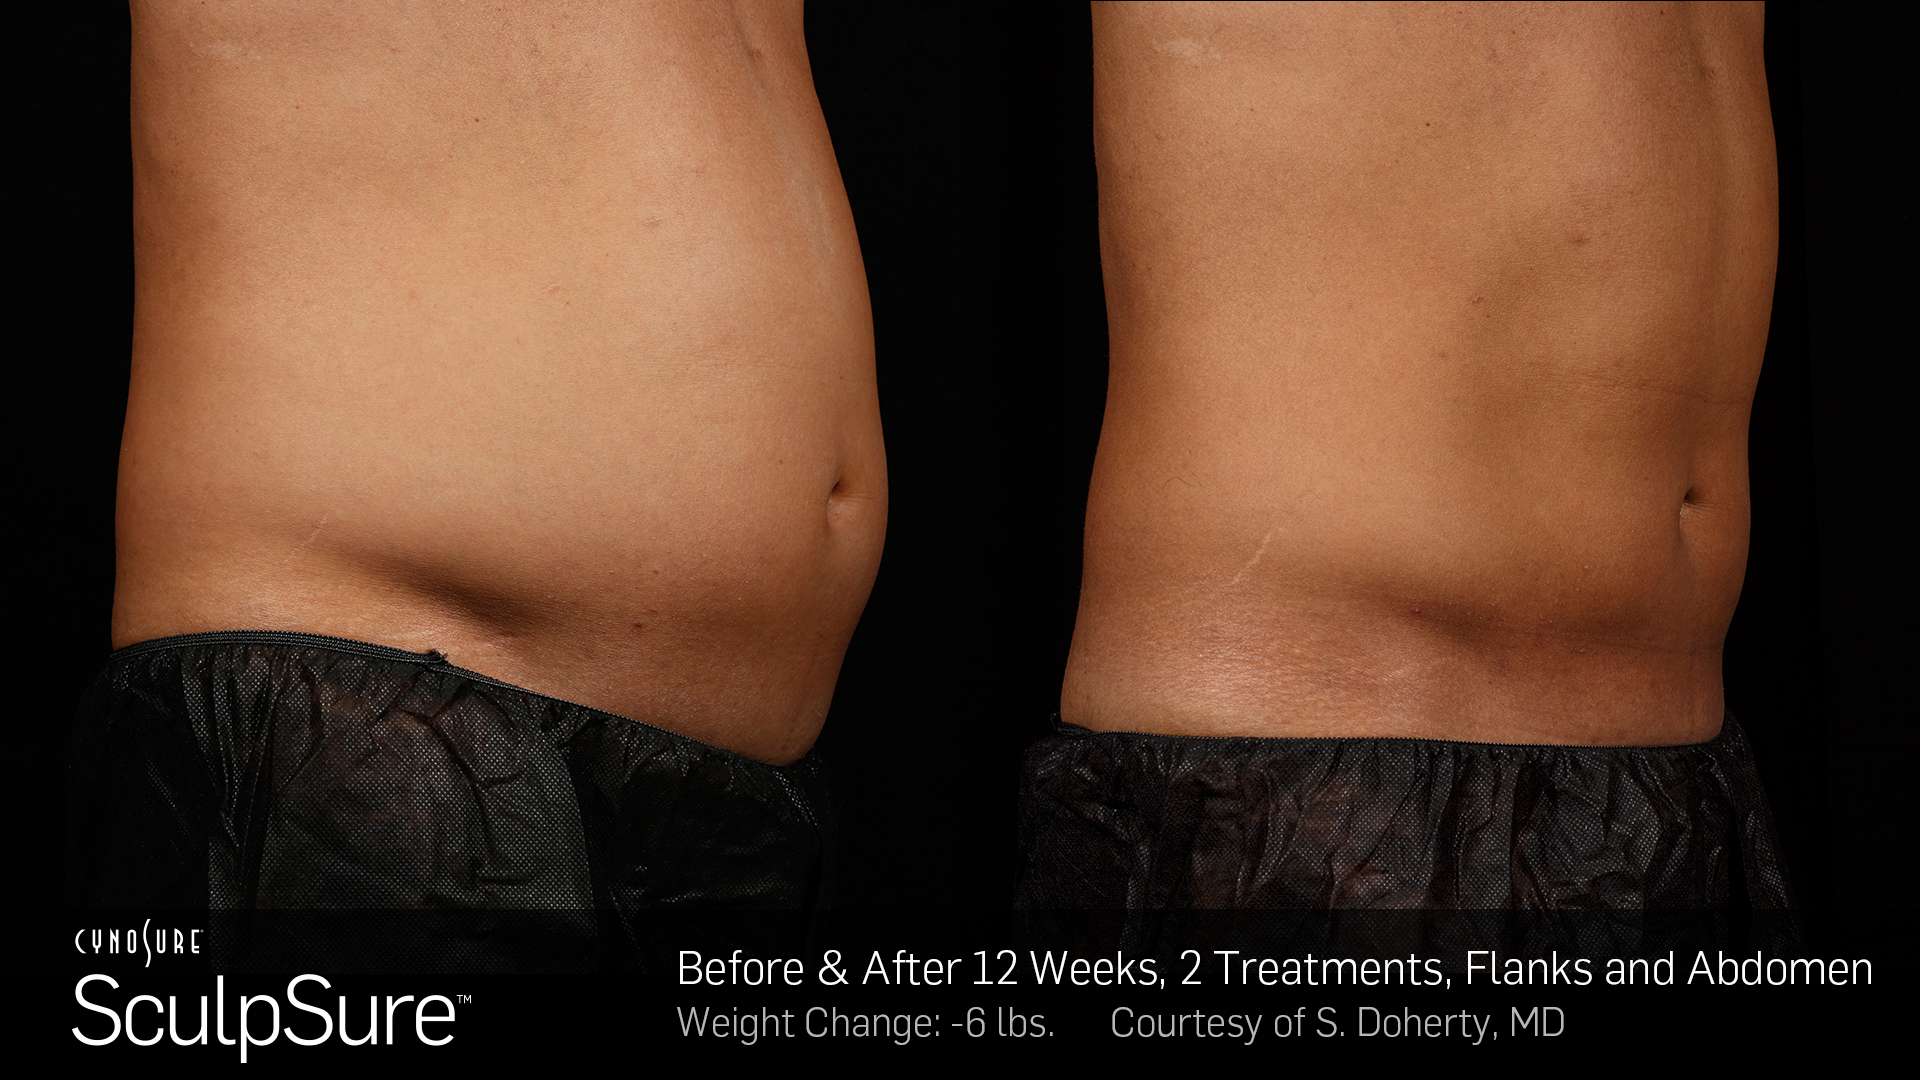 BA-SculpSure-S-Doherty-2TX-12WKs